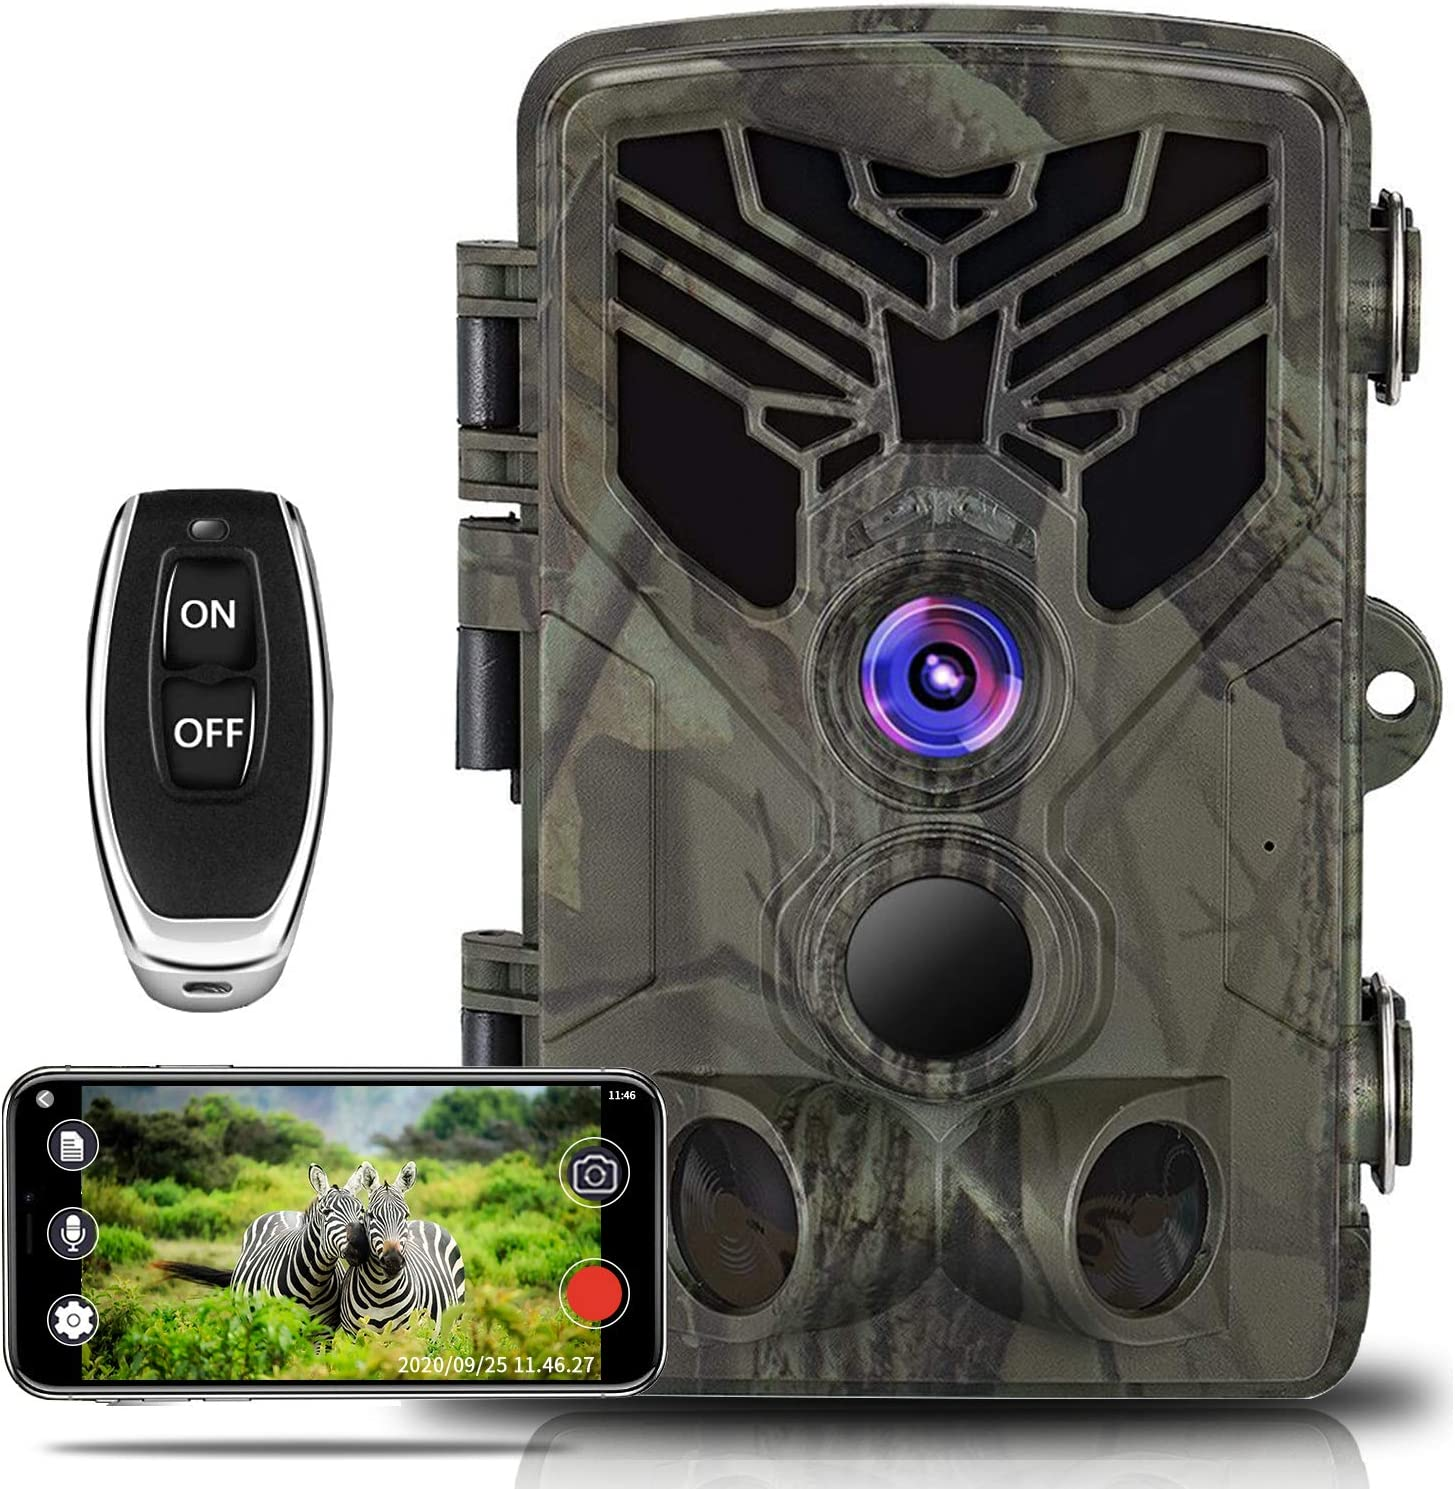 WiFi Trail Camera, Taotique 20MP 1080P WiFi Wildlife Camera Night Vision Motion Activated, 0.3s Trigger Speed Game Hunting Scouting Camera for Outdoor Wildlife, Garden and Home Security Surveillance